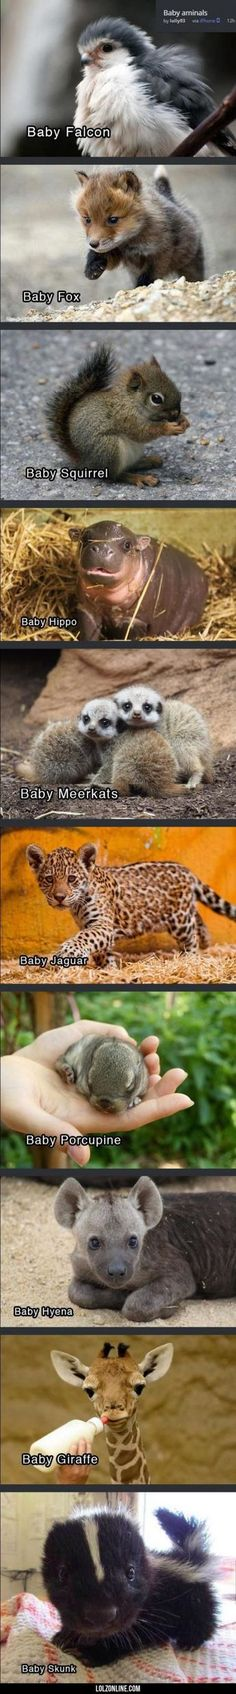 This pic is so cute! I can't believe how adorable baby animals can be! The Animals, Baby Animals Pictures, Cute Little Animals, Cute Animal Pictures, Cute Funny Animals, Cute Dogs, Cute Babies, Small Animals, Girl Pictures